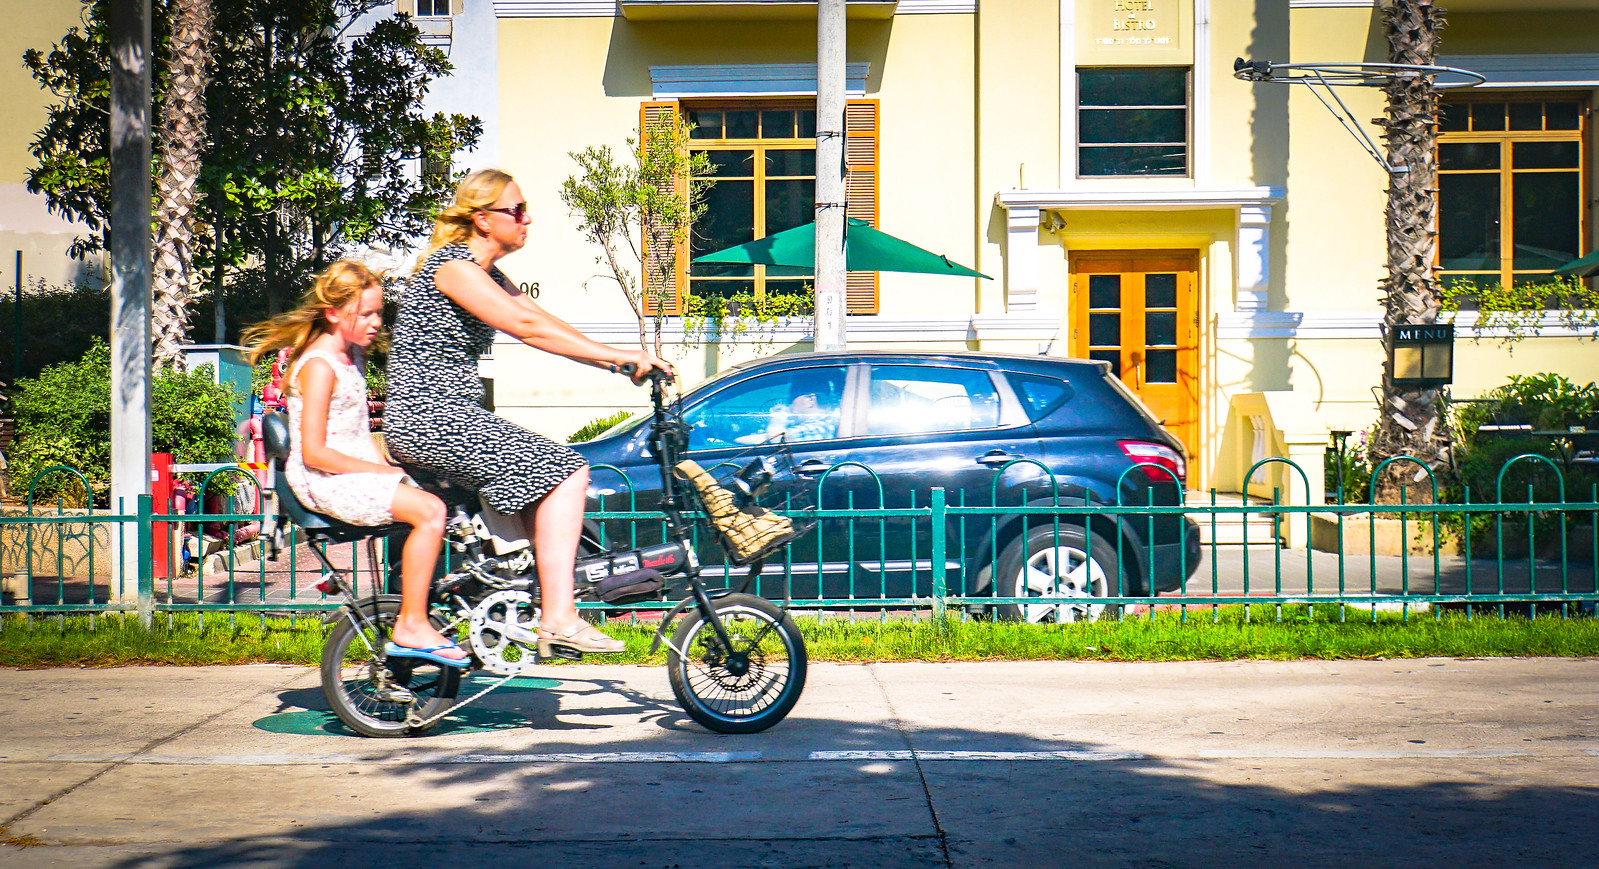 Thanks for Publishing my Photo, in Electric bikes and social responsibility - Israel News - Jerusalem Post